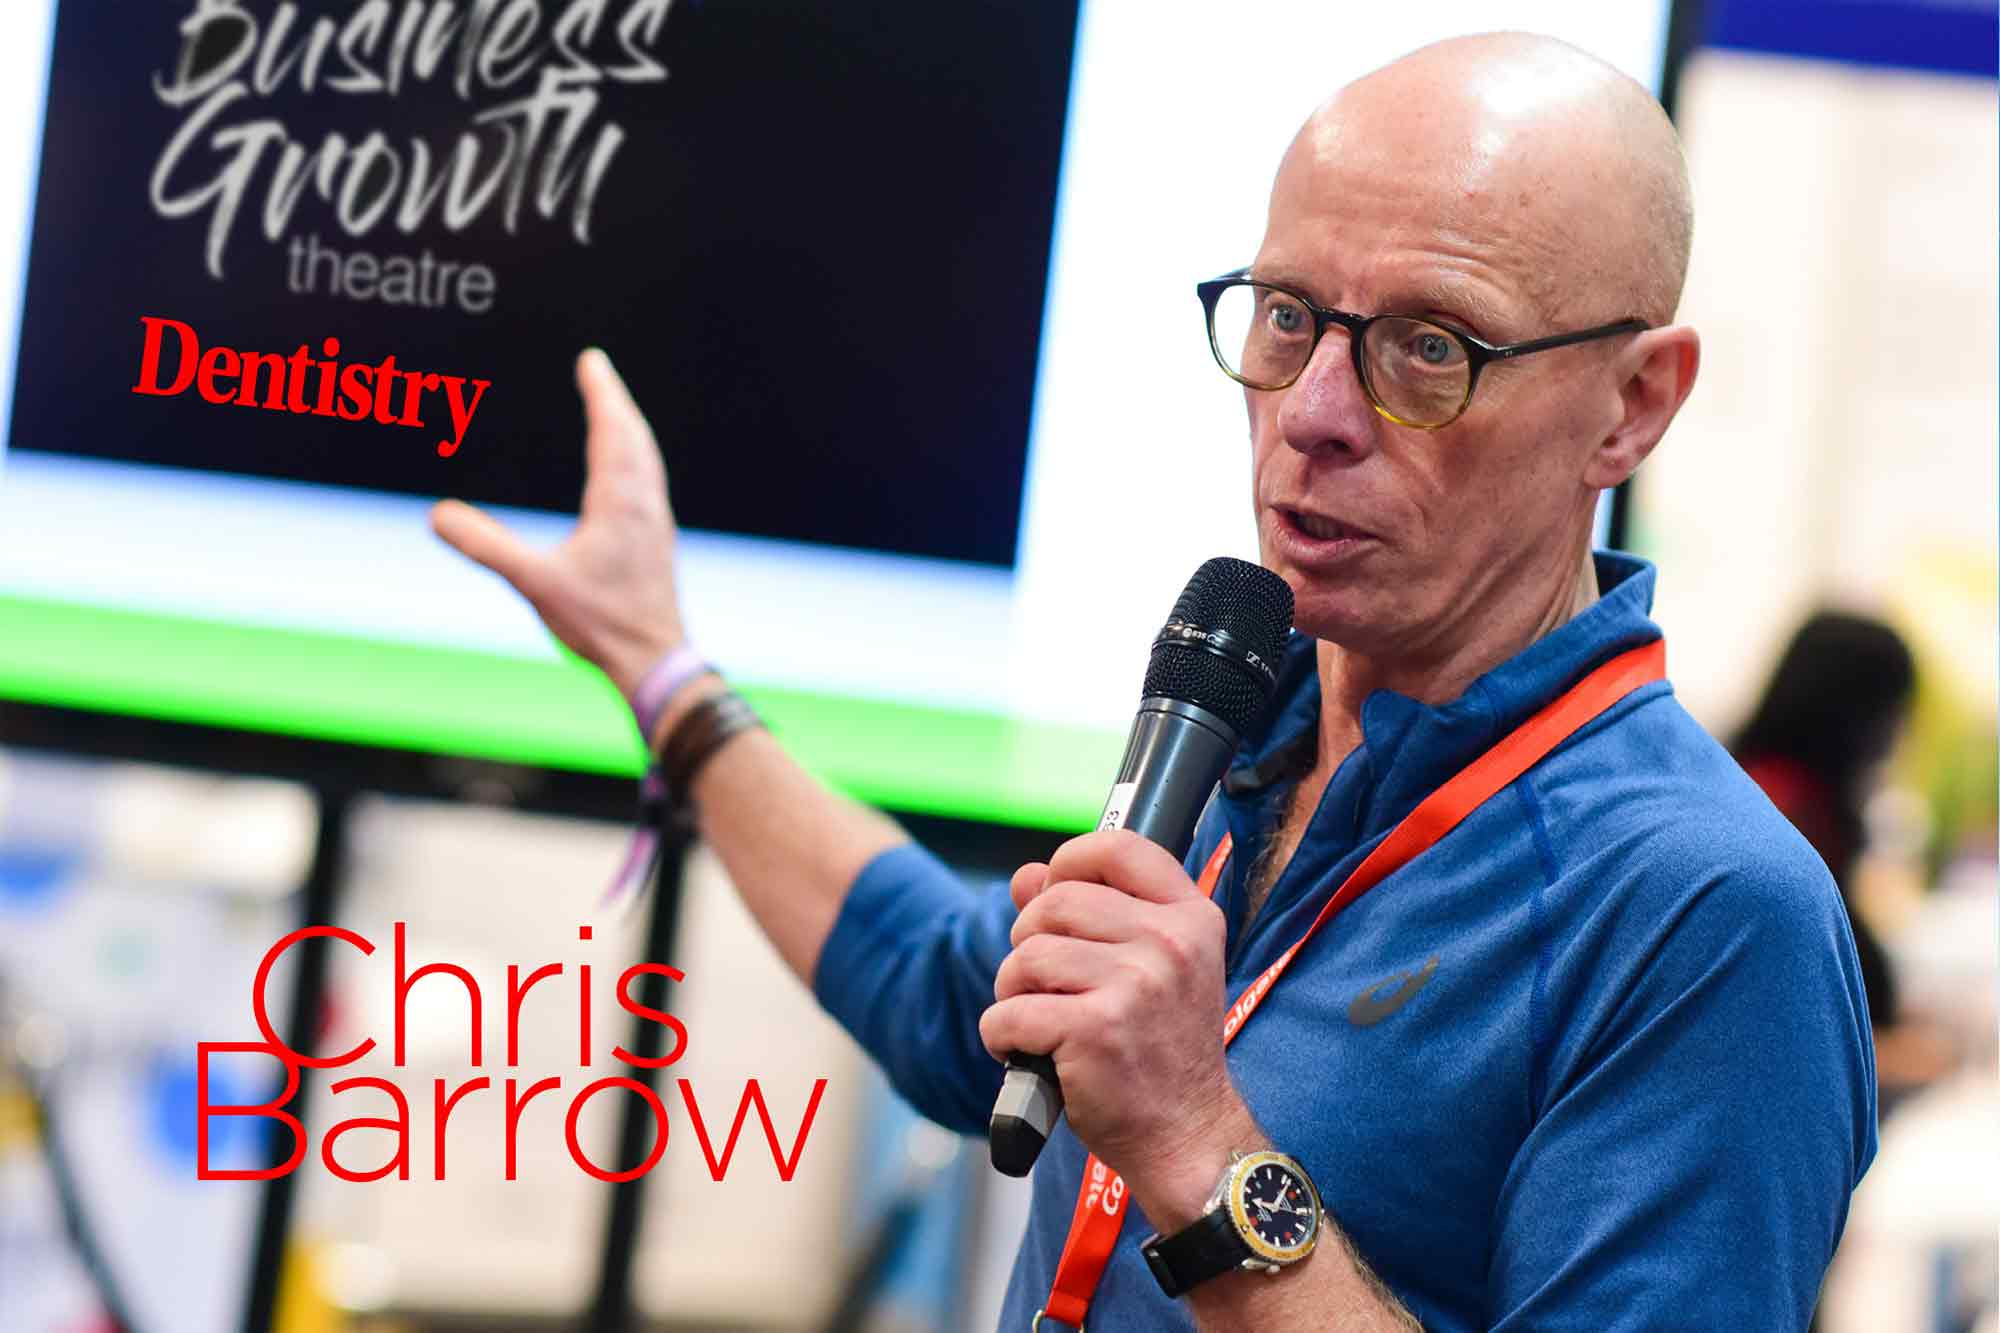 This week we chat to Chris Barrow about the gradual easing of lockdown restrictions and what this means for dentistry